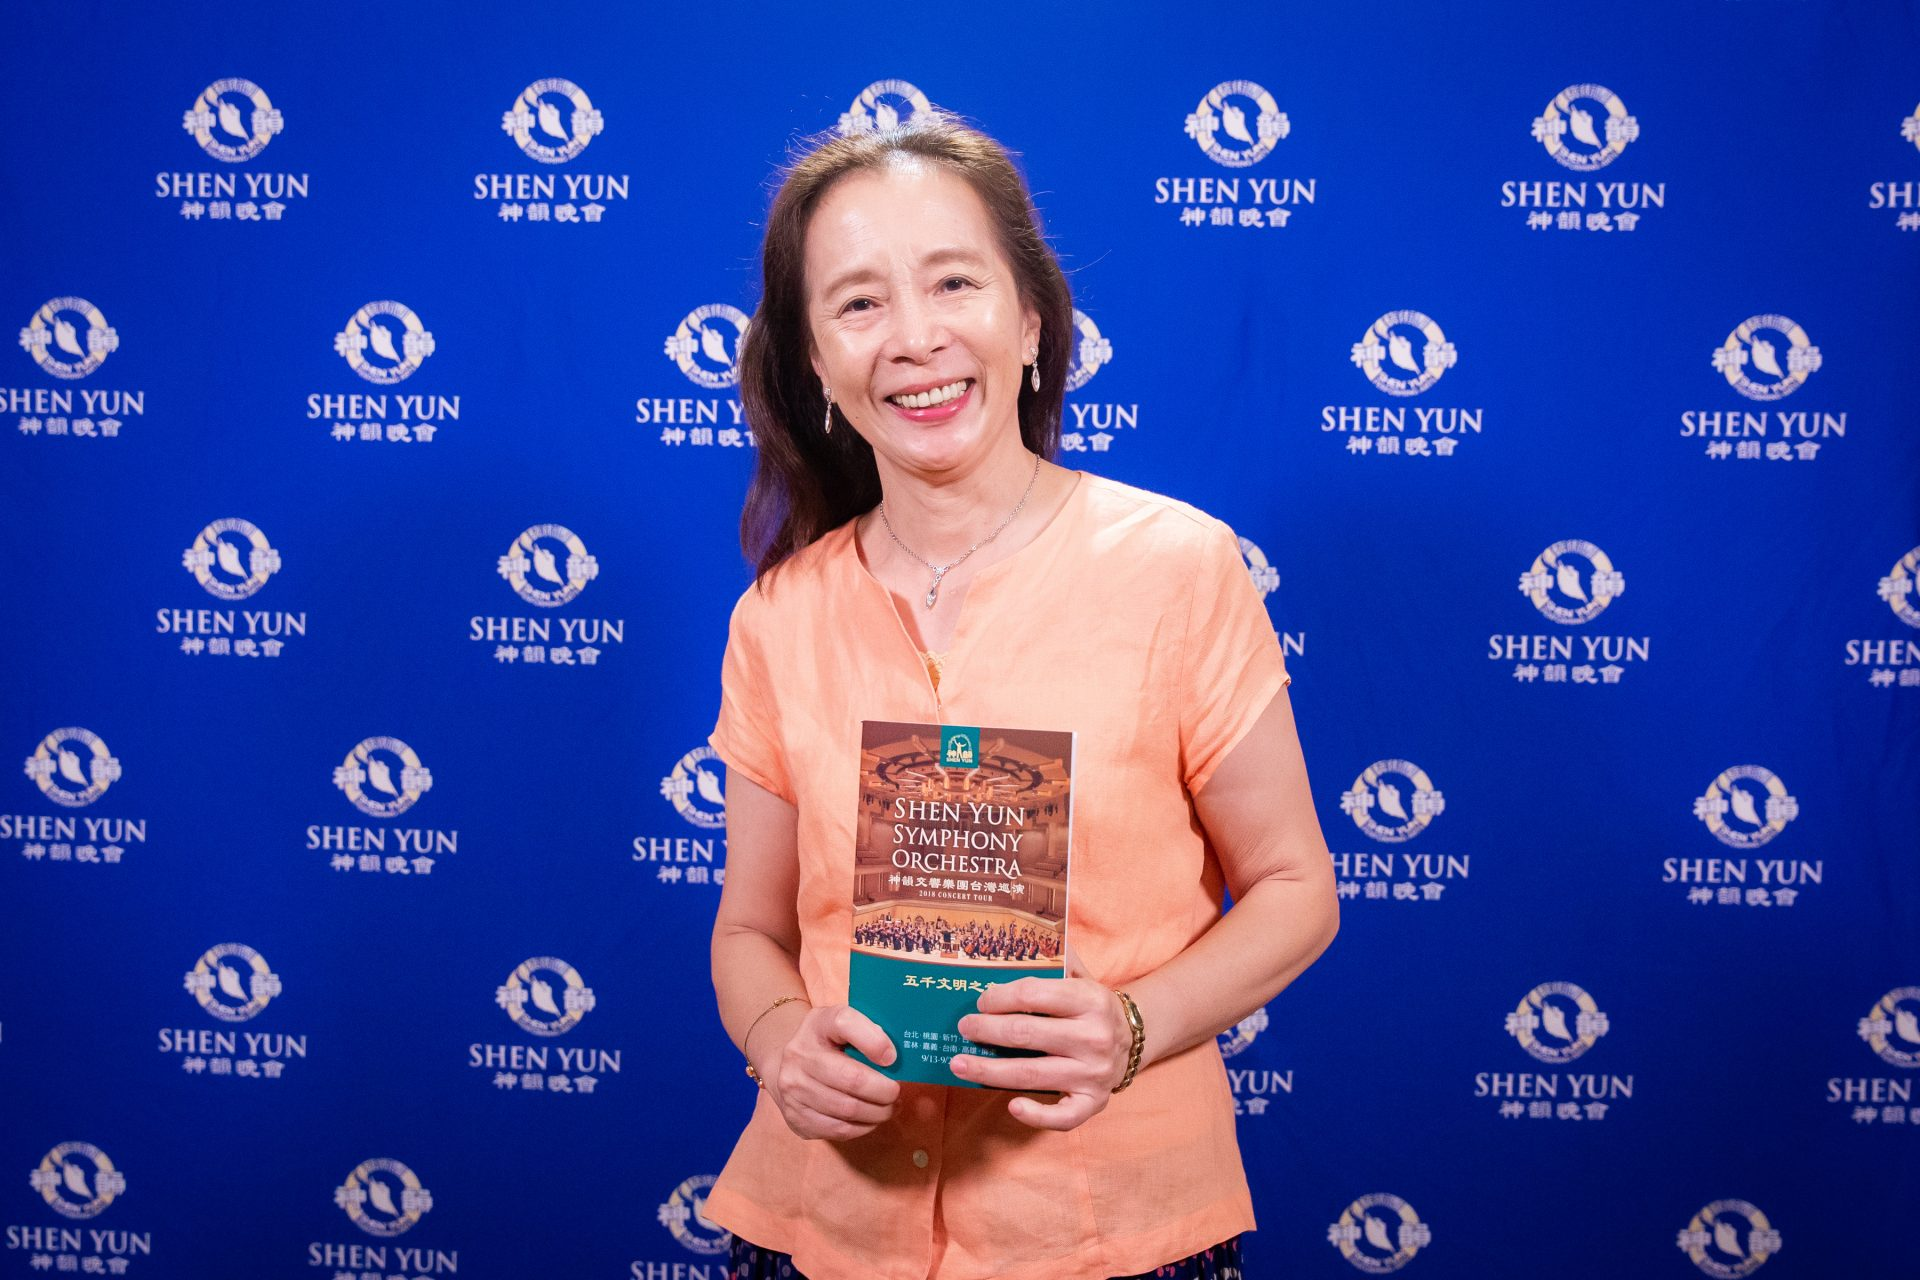 Emmy Chen, Music Professor at National Taipei University of Education and Shih Chien University, enjoyed Shen Yun Symphony Orchestra's performance at Zhongshan Hall, Taipei, Taiwan on Sep. 19, 2018. (Image: Chen Bozhou / The Epoch Times)